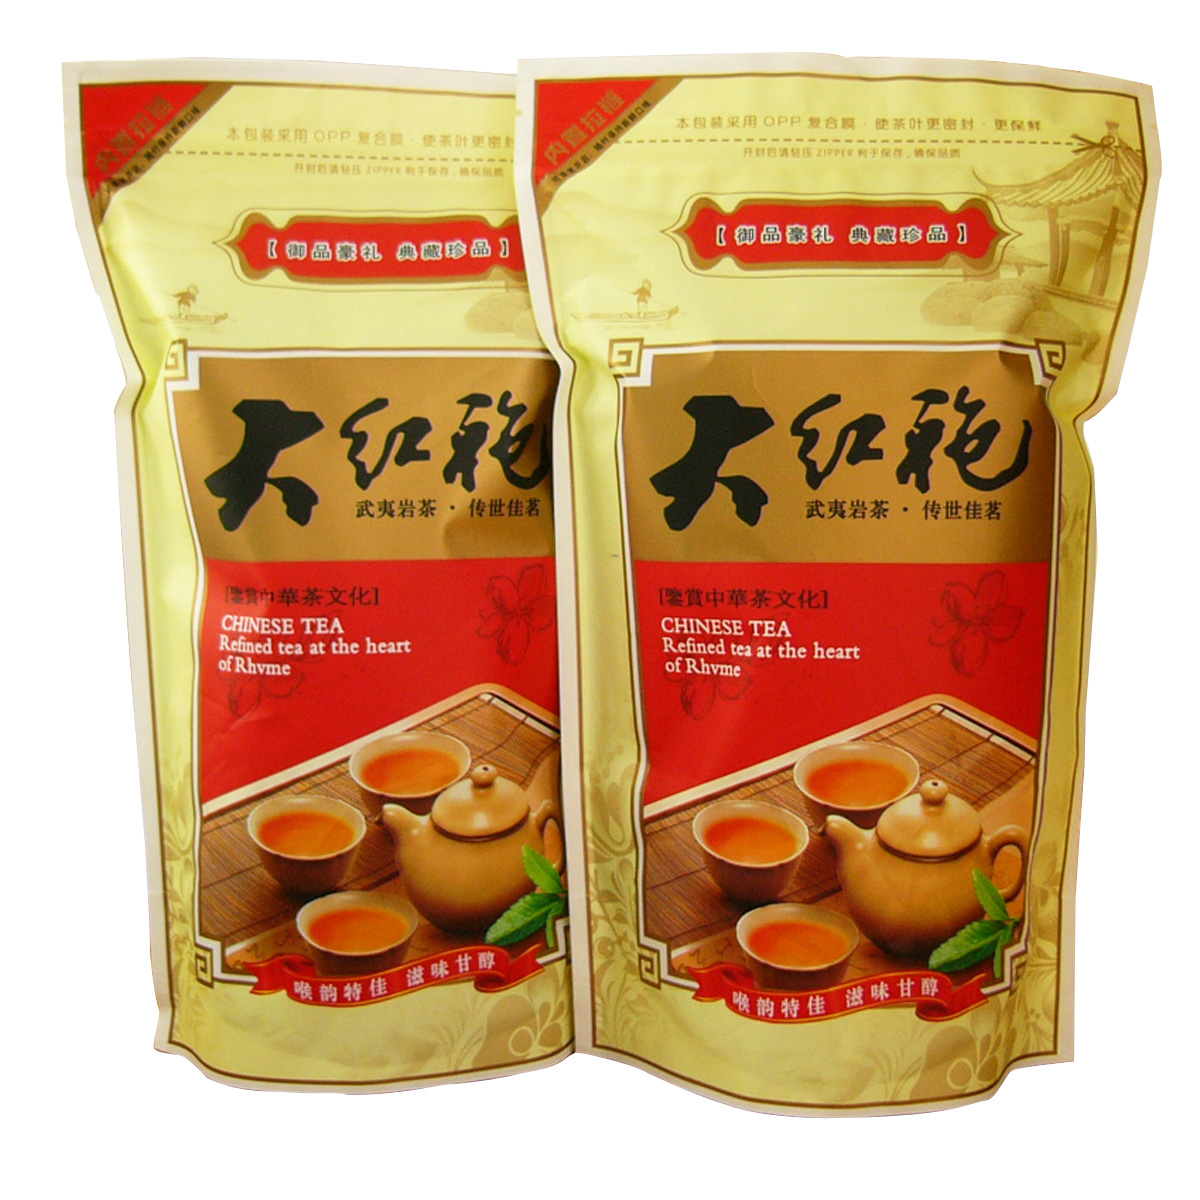 Гаджет  500g oolong tea dahong pao the chinese oolong tea oolong da hong pao tea  health care set the products for weight loss None Еда